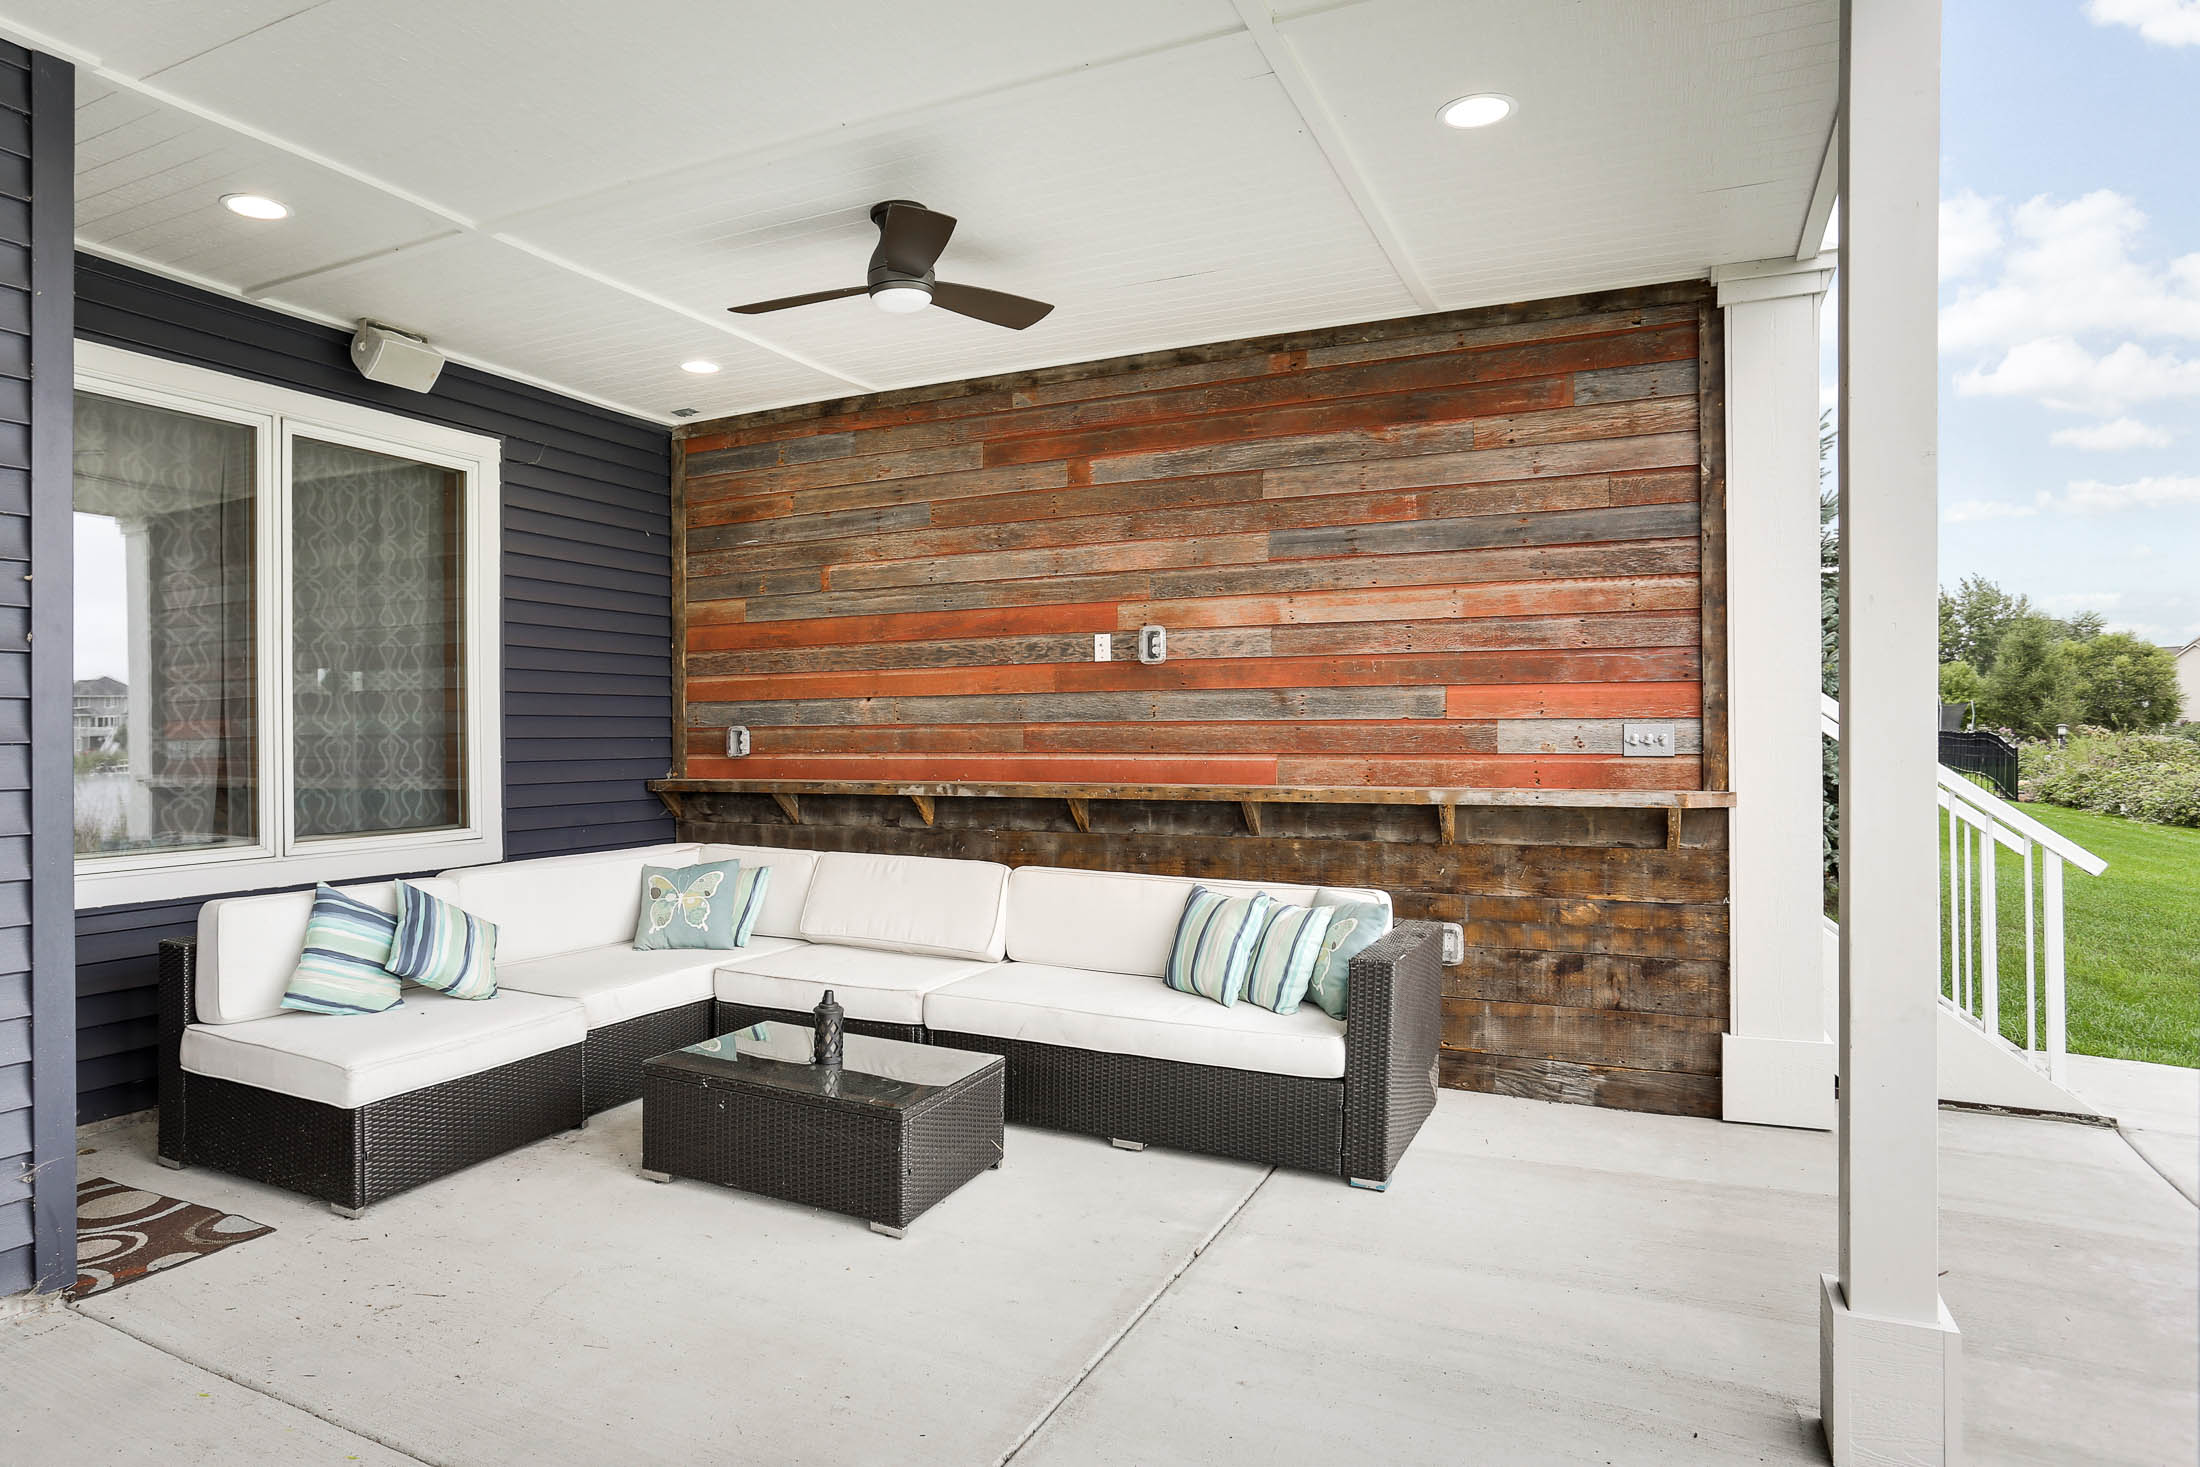 Wonderful space below for entertaining Lakeside, Includes Reclaimed Bar-wood accent wall